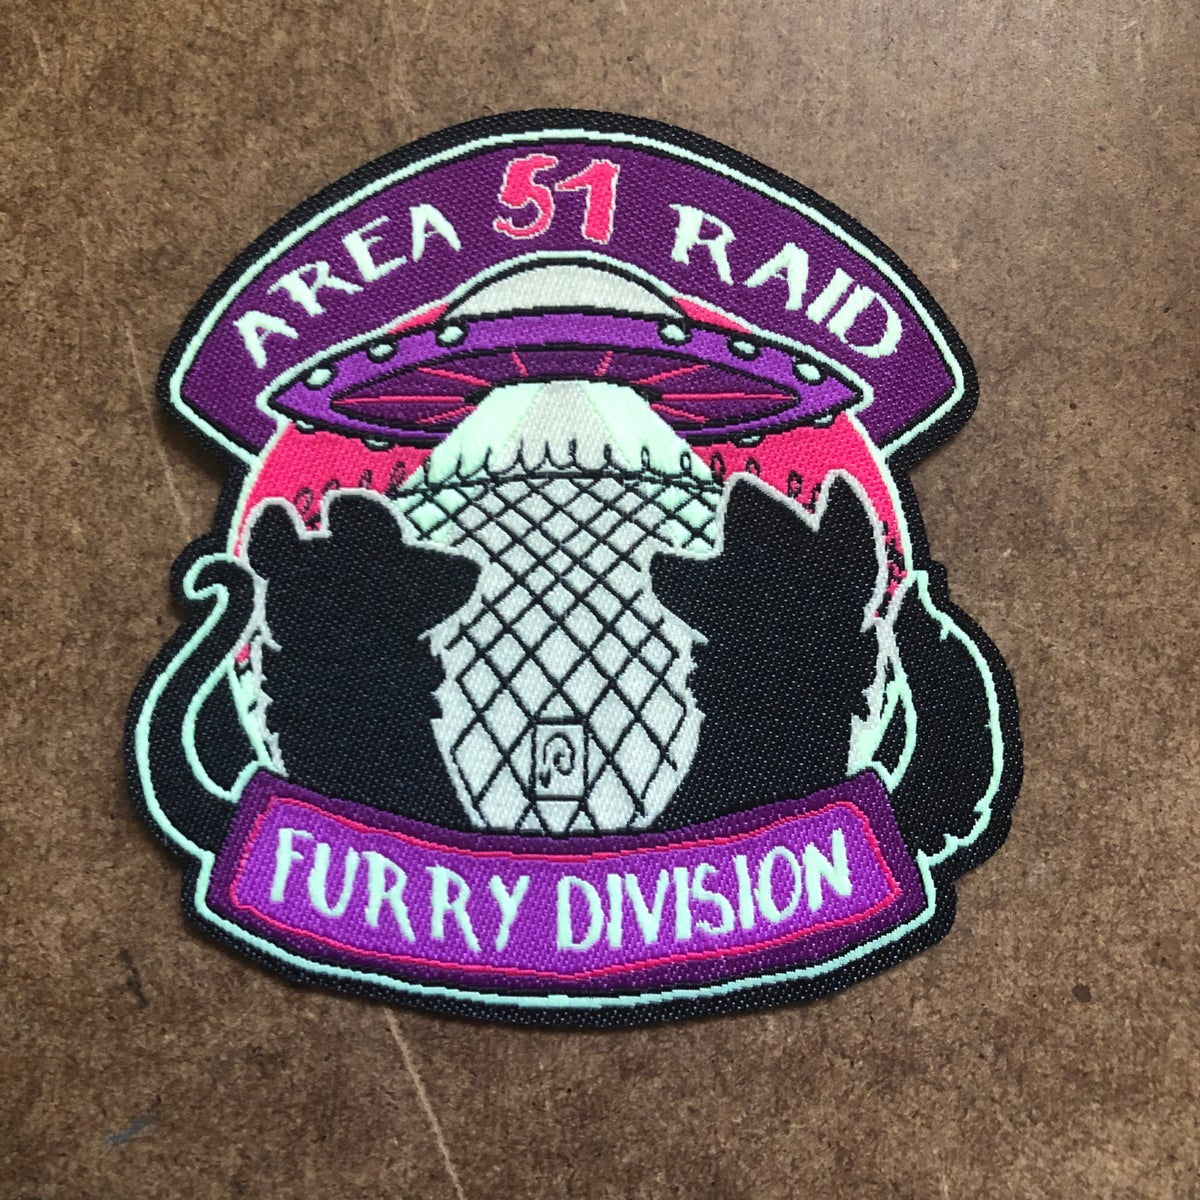 Image of Area 51 Raid Furry Division Patch (It glows!)